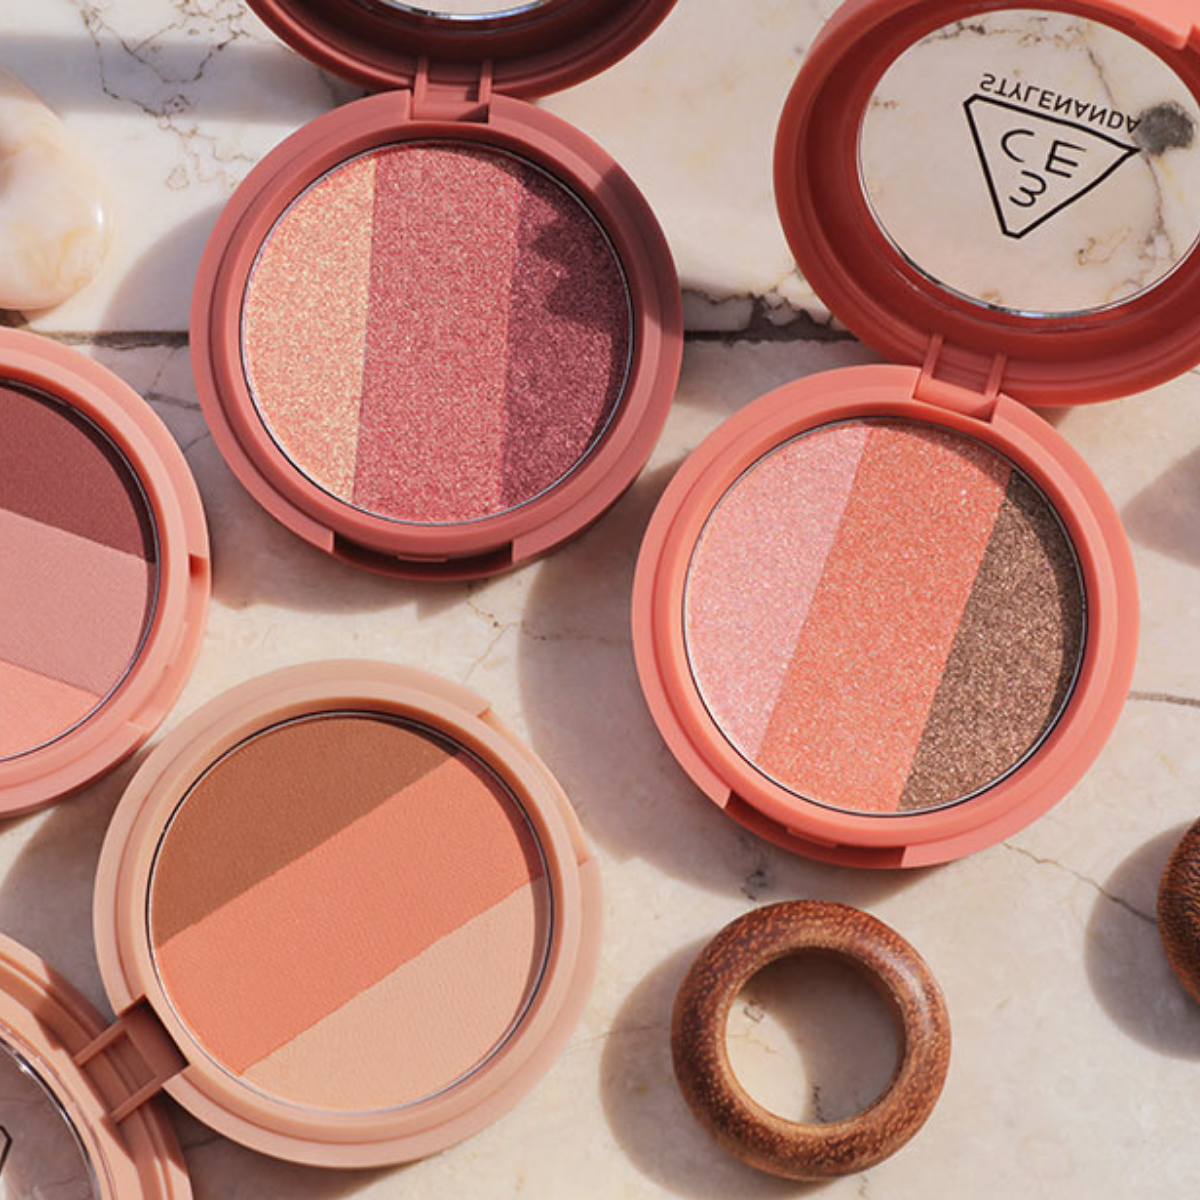 4 Must Buy Eyeshadows from Korean Makeup Brands #style #shopping #styles #outfit #pretty #girl #girls #beauty #beautiful #me #cute #stylish #photooftheday #swag #dress #shoes #diy #design #fashion #Makeup